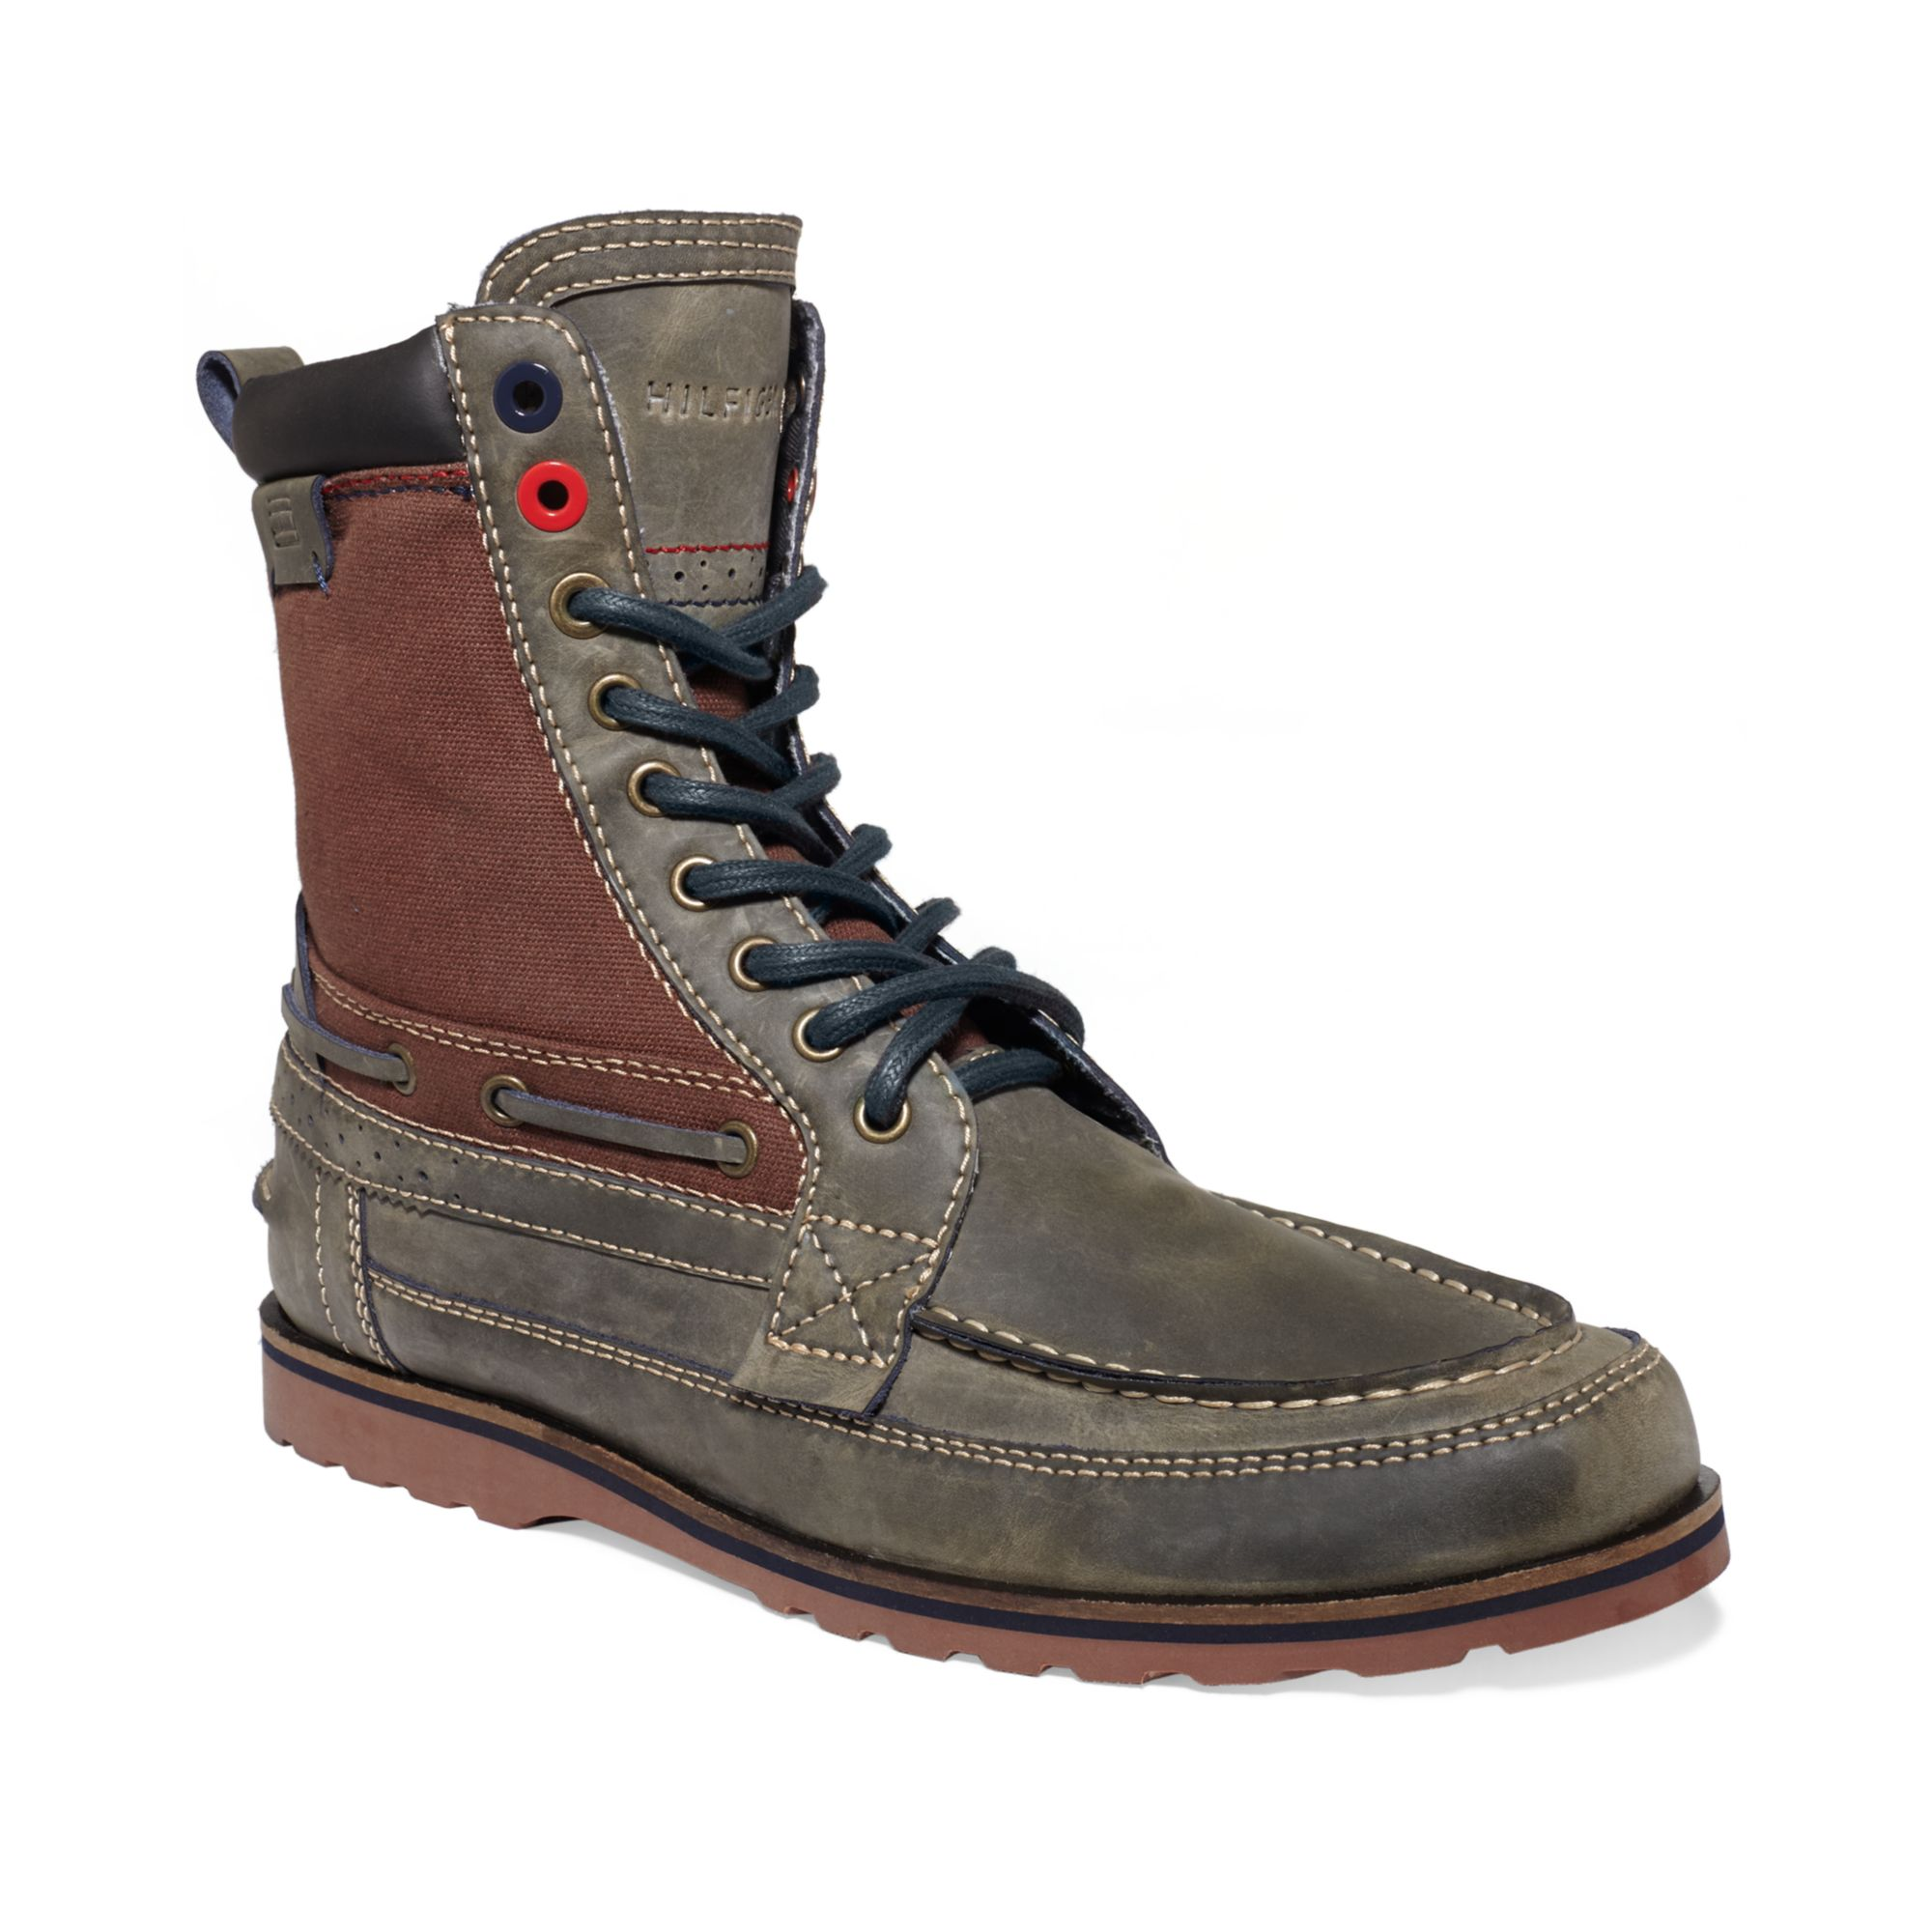 5c3339e668412 Lyst - Tommy Hilfiger Hawk Boots in Gray for Men